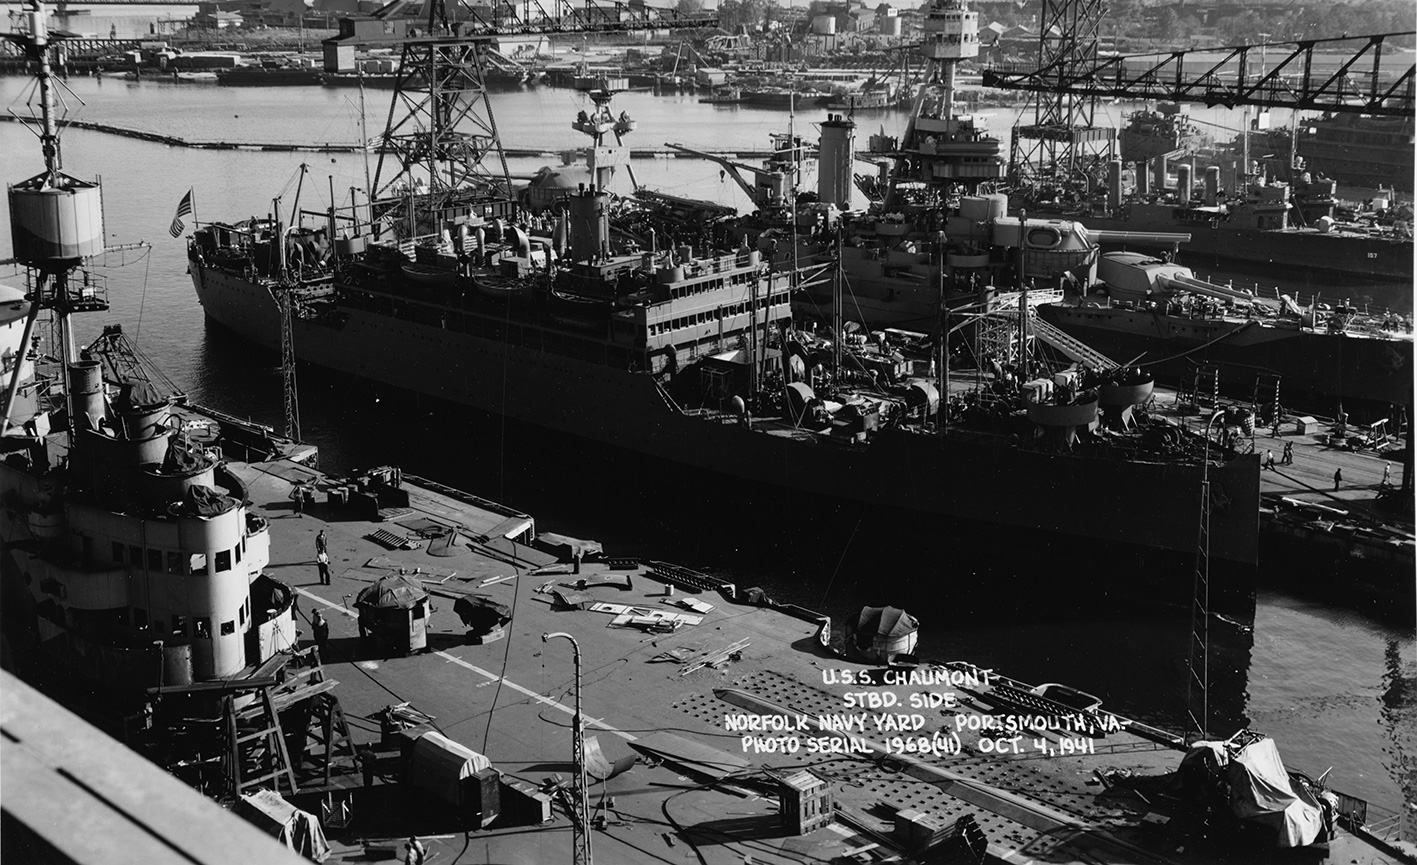 HMS ILLUSTRIOUS undergoing repairs at Norfolk Navy Yards. Picture courtesy Researcher at Large